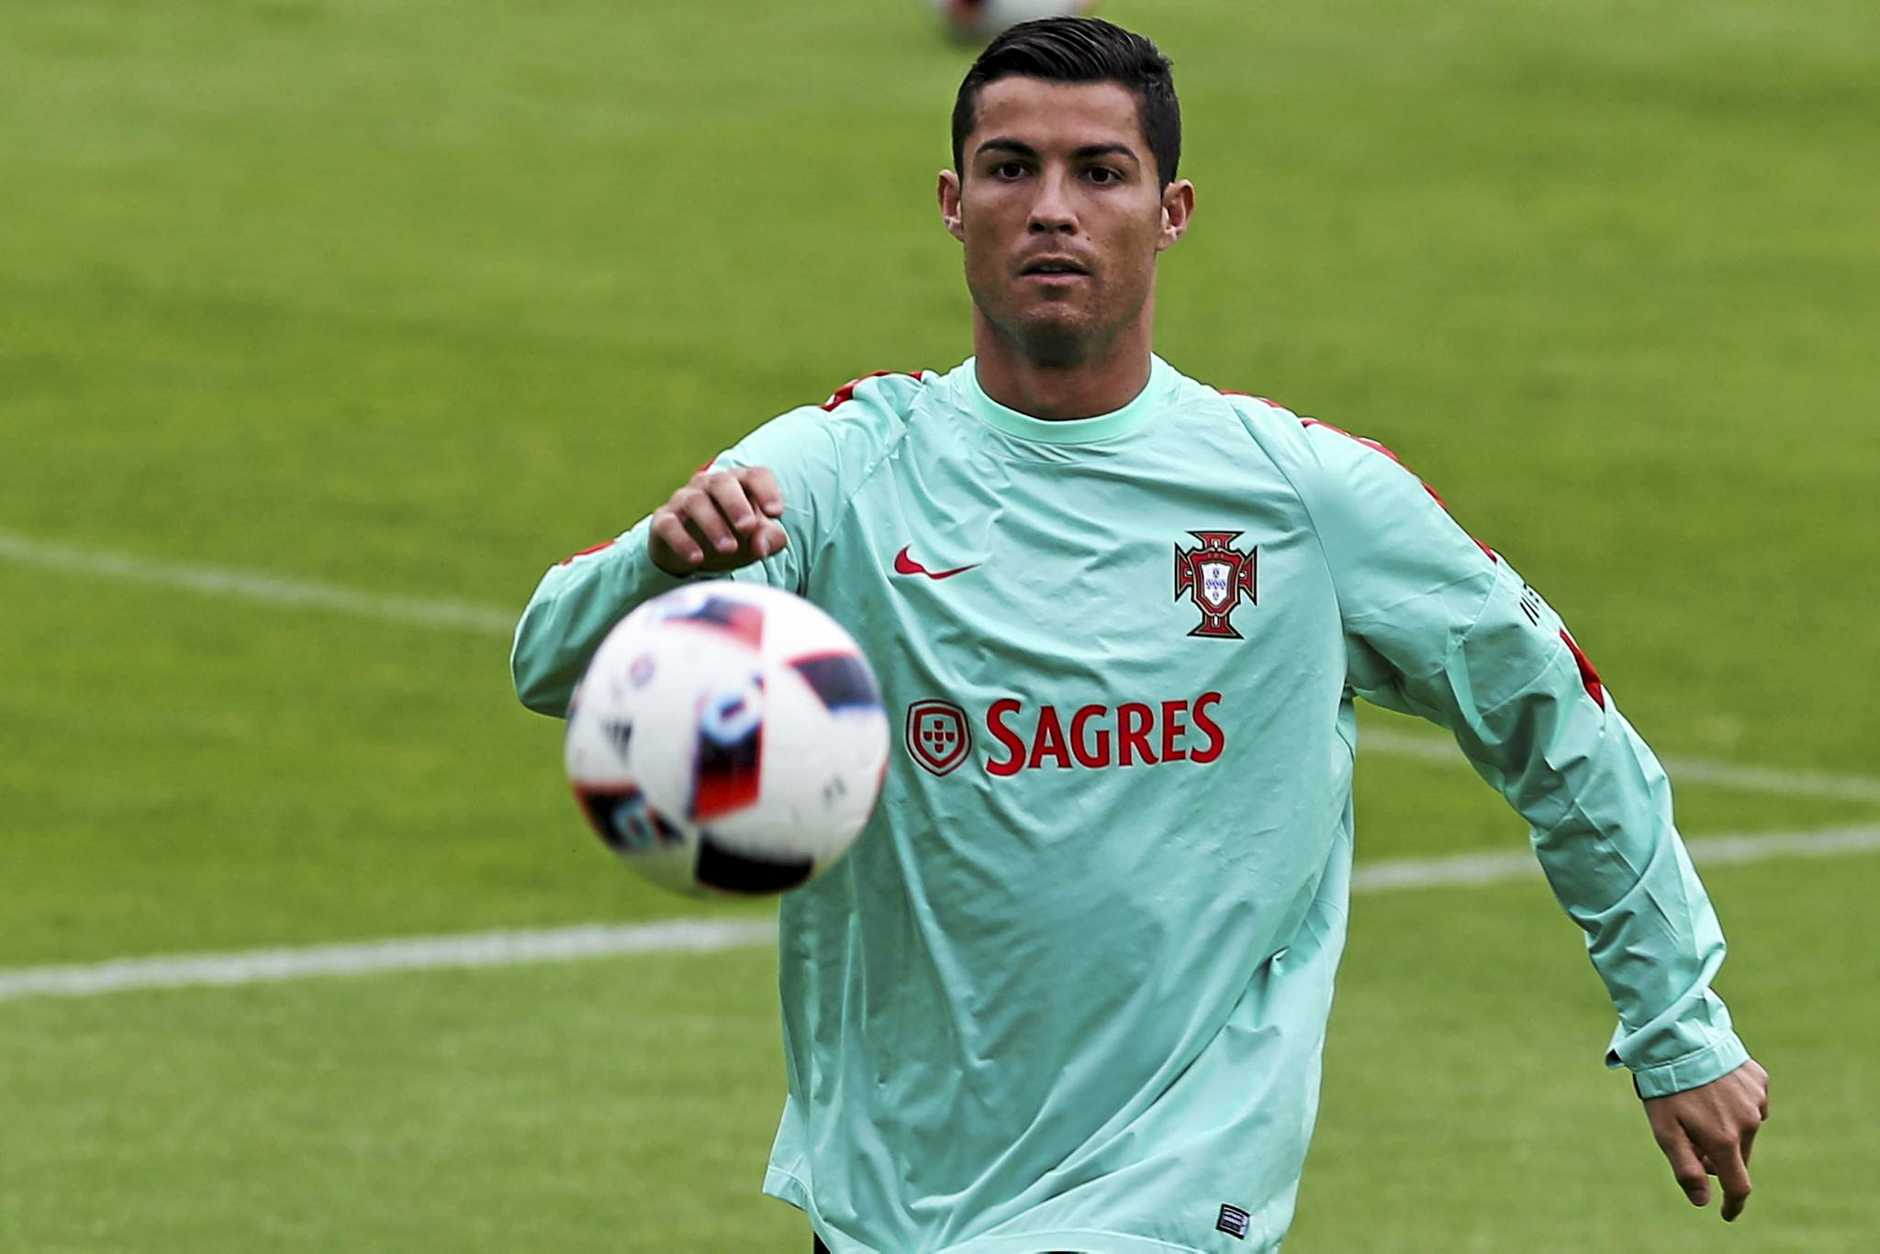 TIME TO SHINE: Portugal's Cristiano Ronaldo during a training session ahead of the Euro 2016 semi-final against Wales.